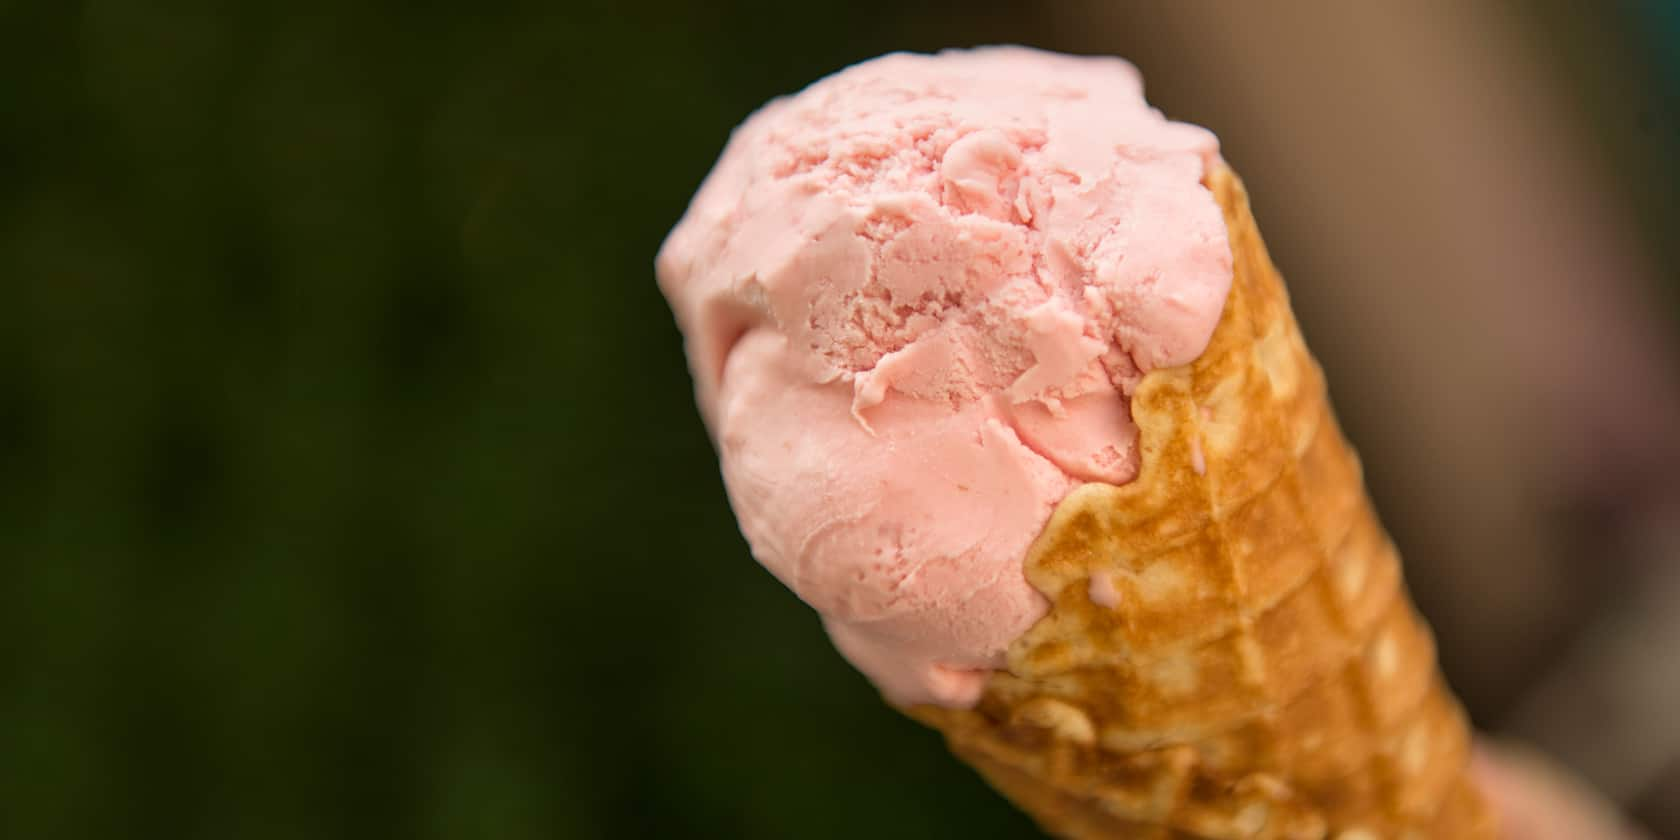 A scoop of strawberry ice cream inside a waffle cone